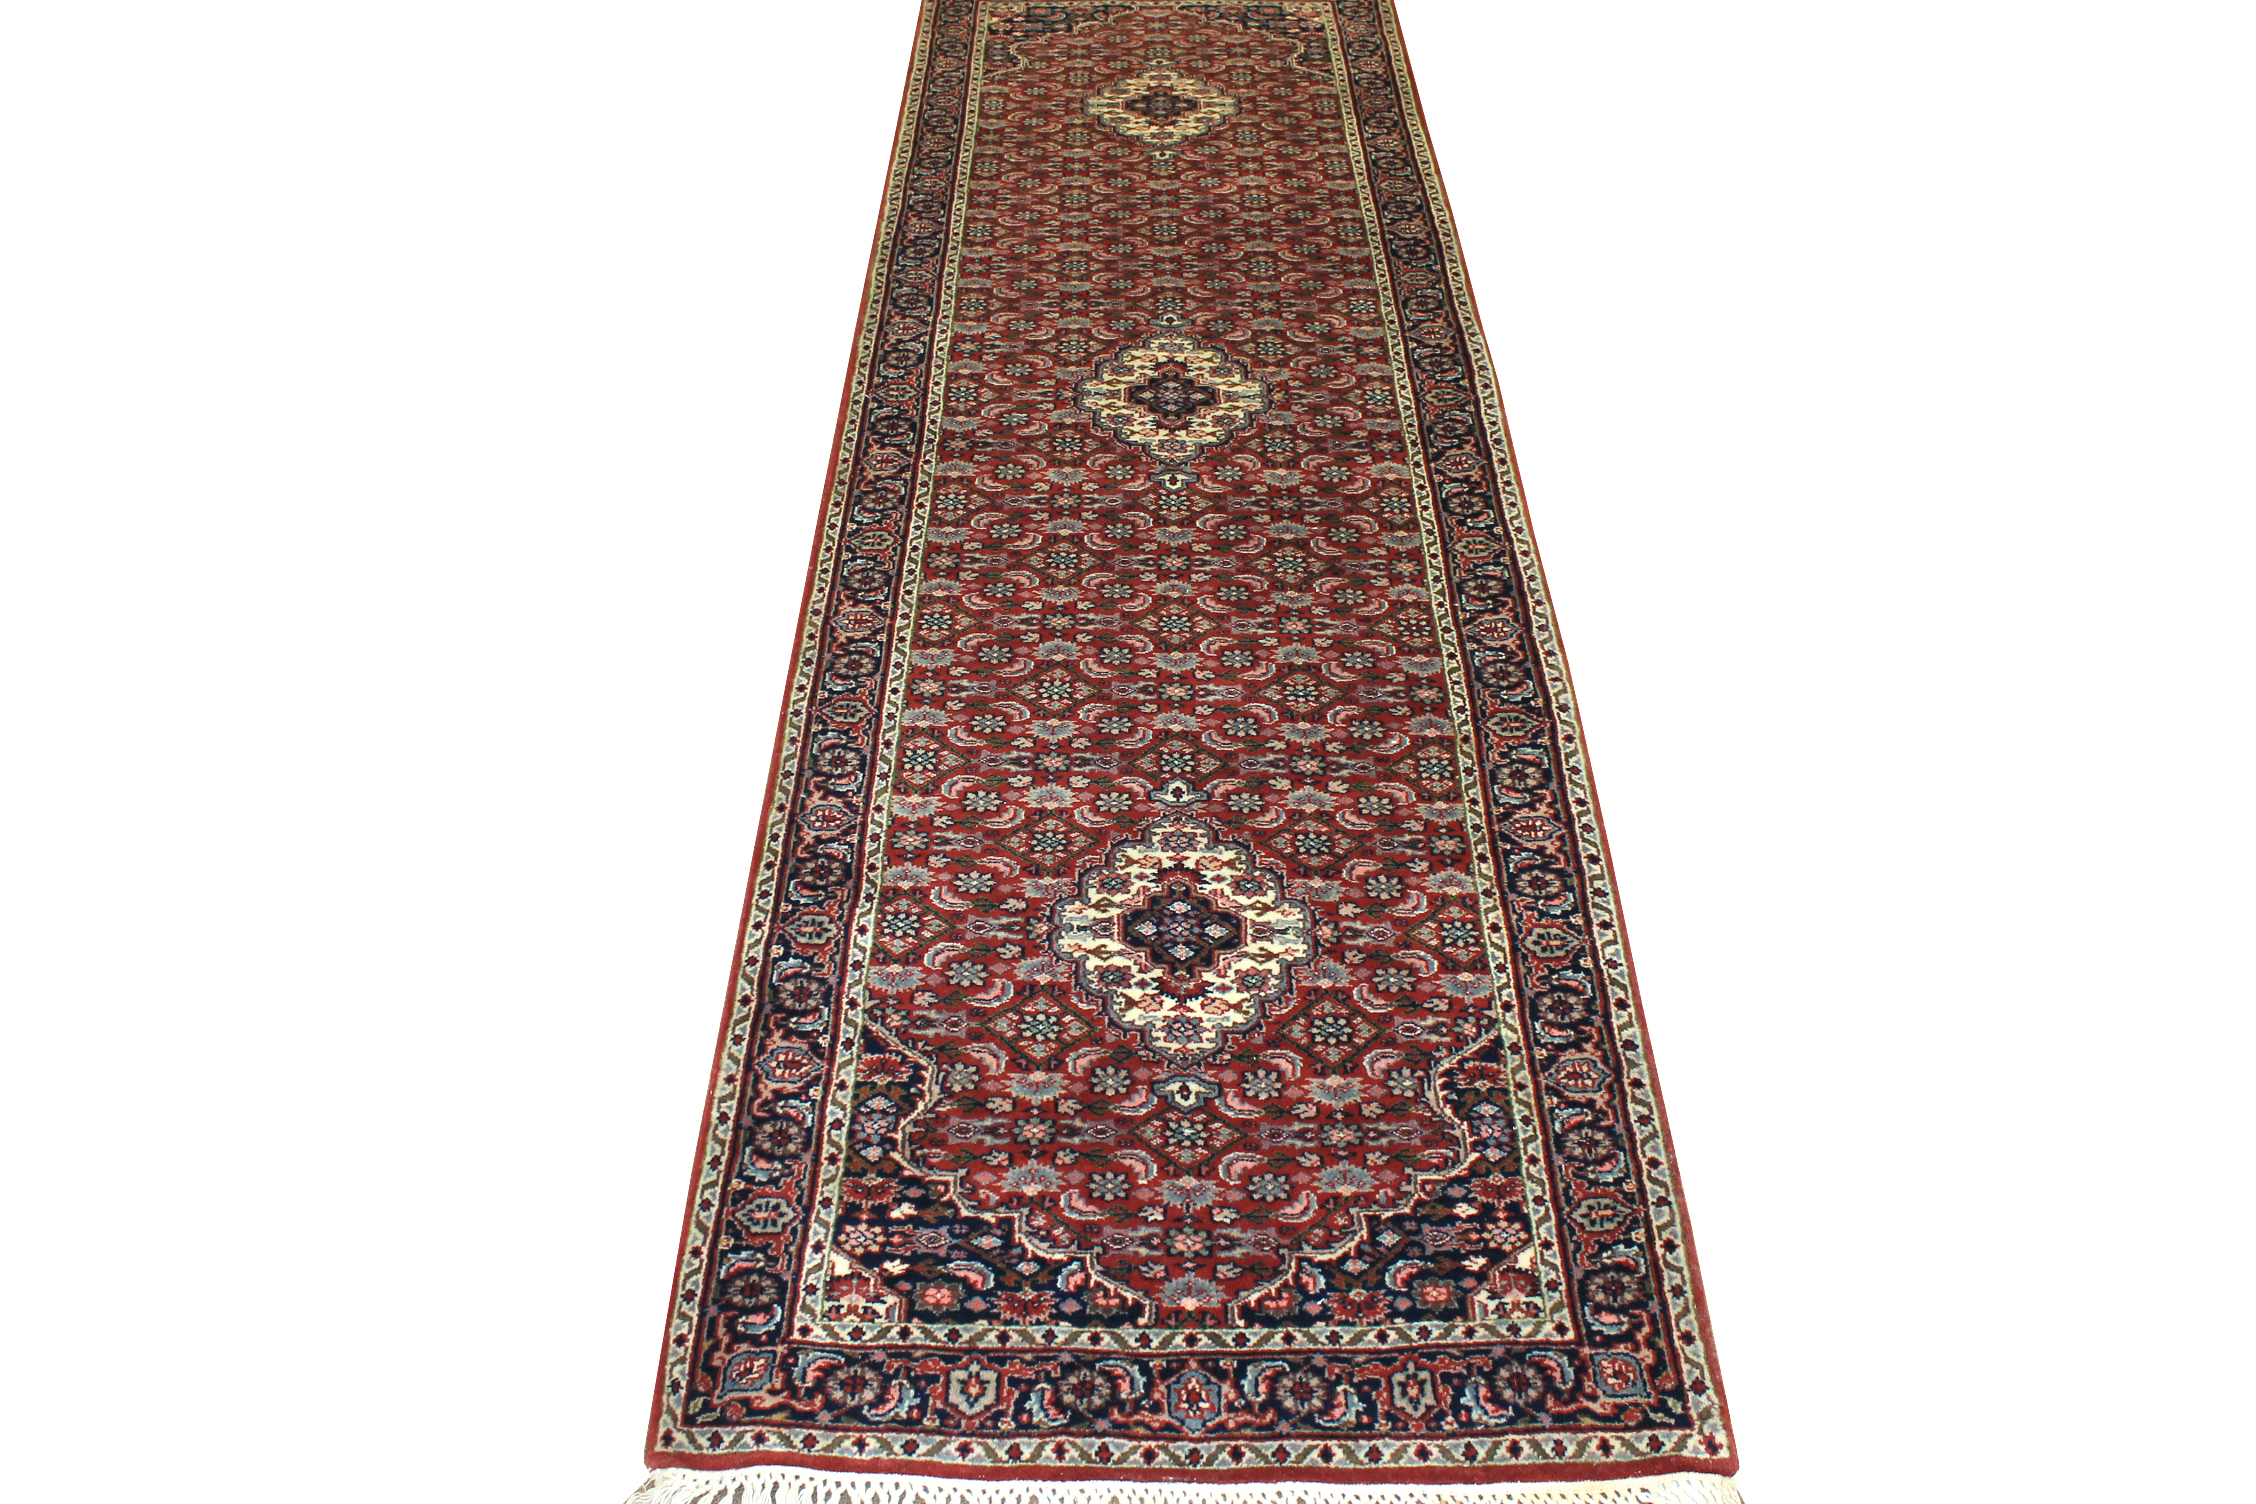 10 ft. Runner Traditional Hand Knotted Wool Area Rug - MR1014